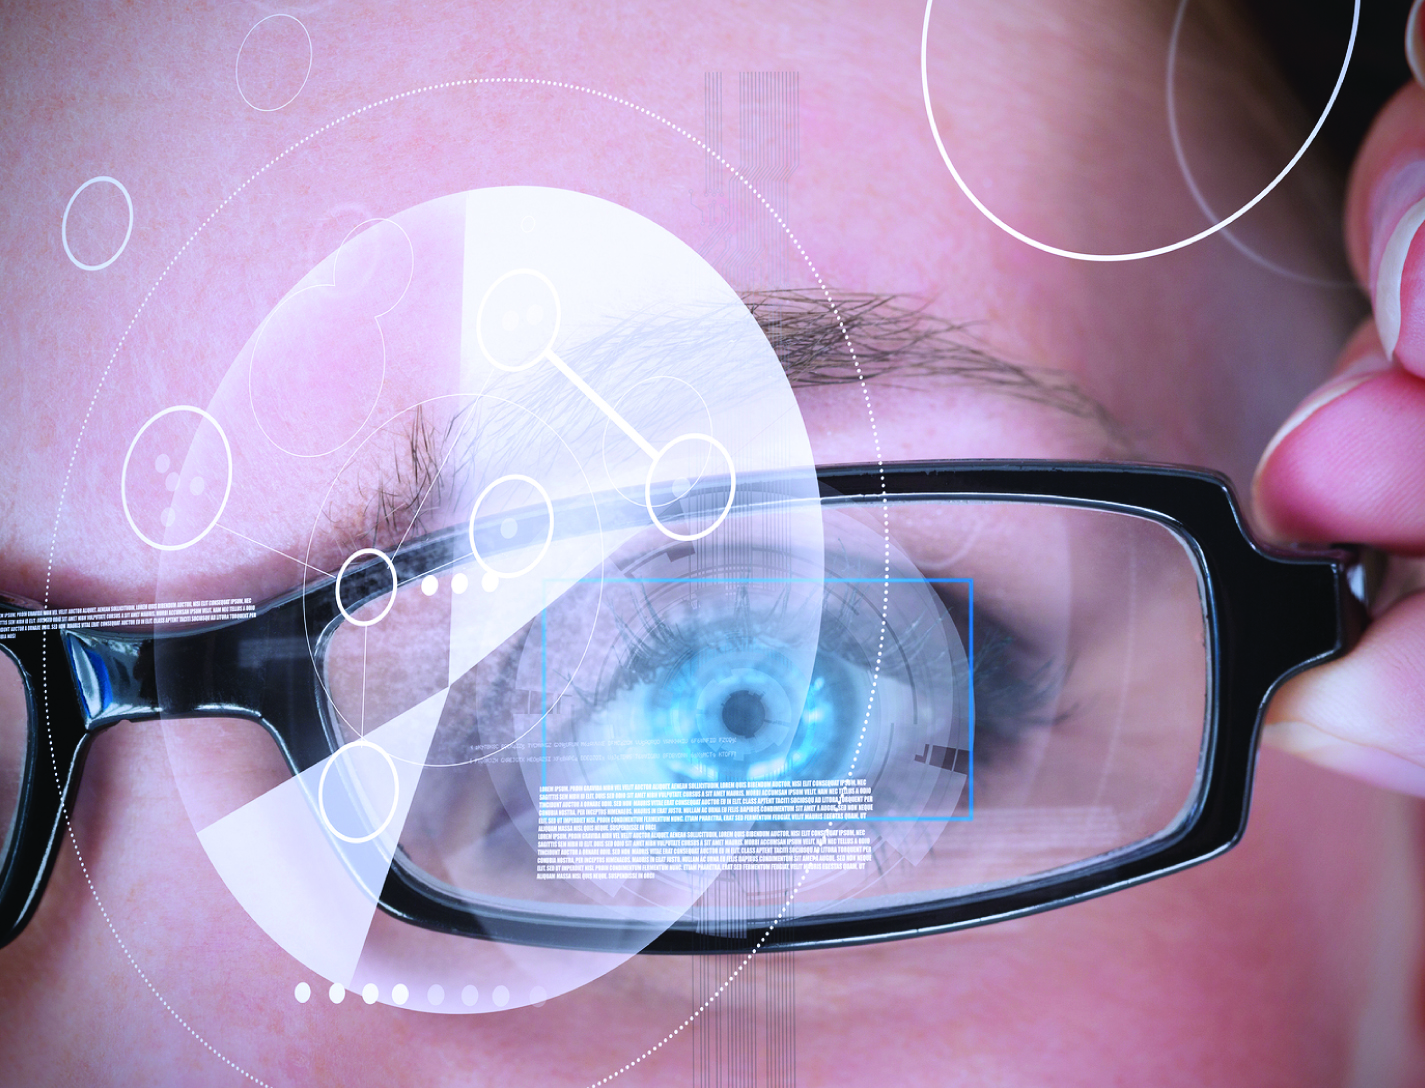 Automated Vision Test